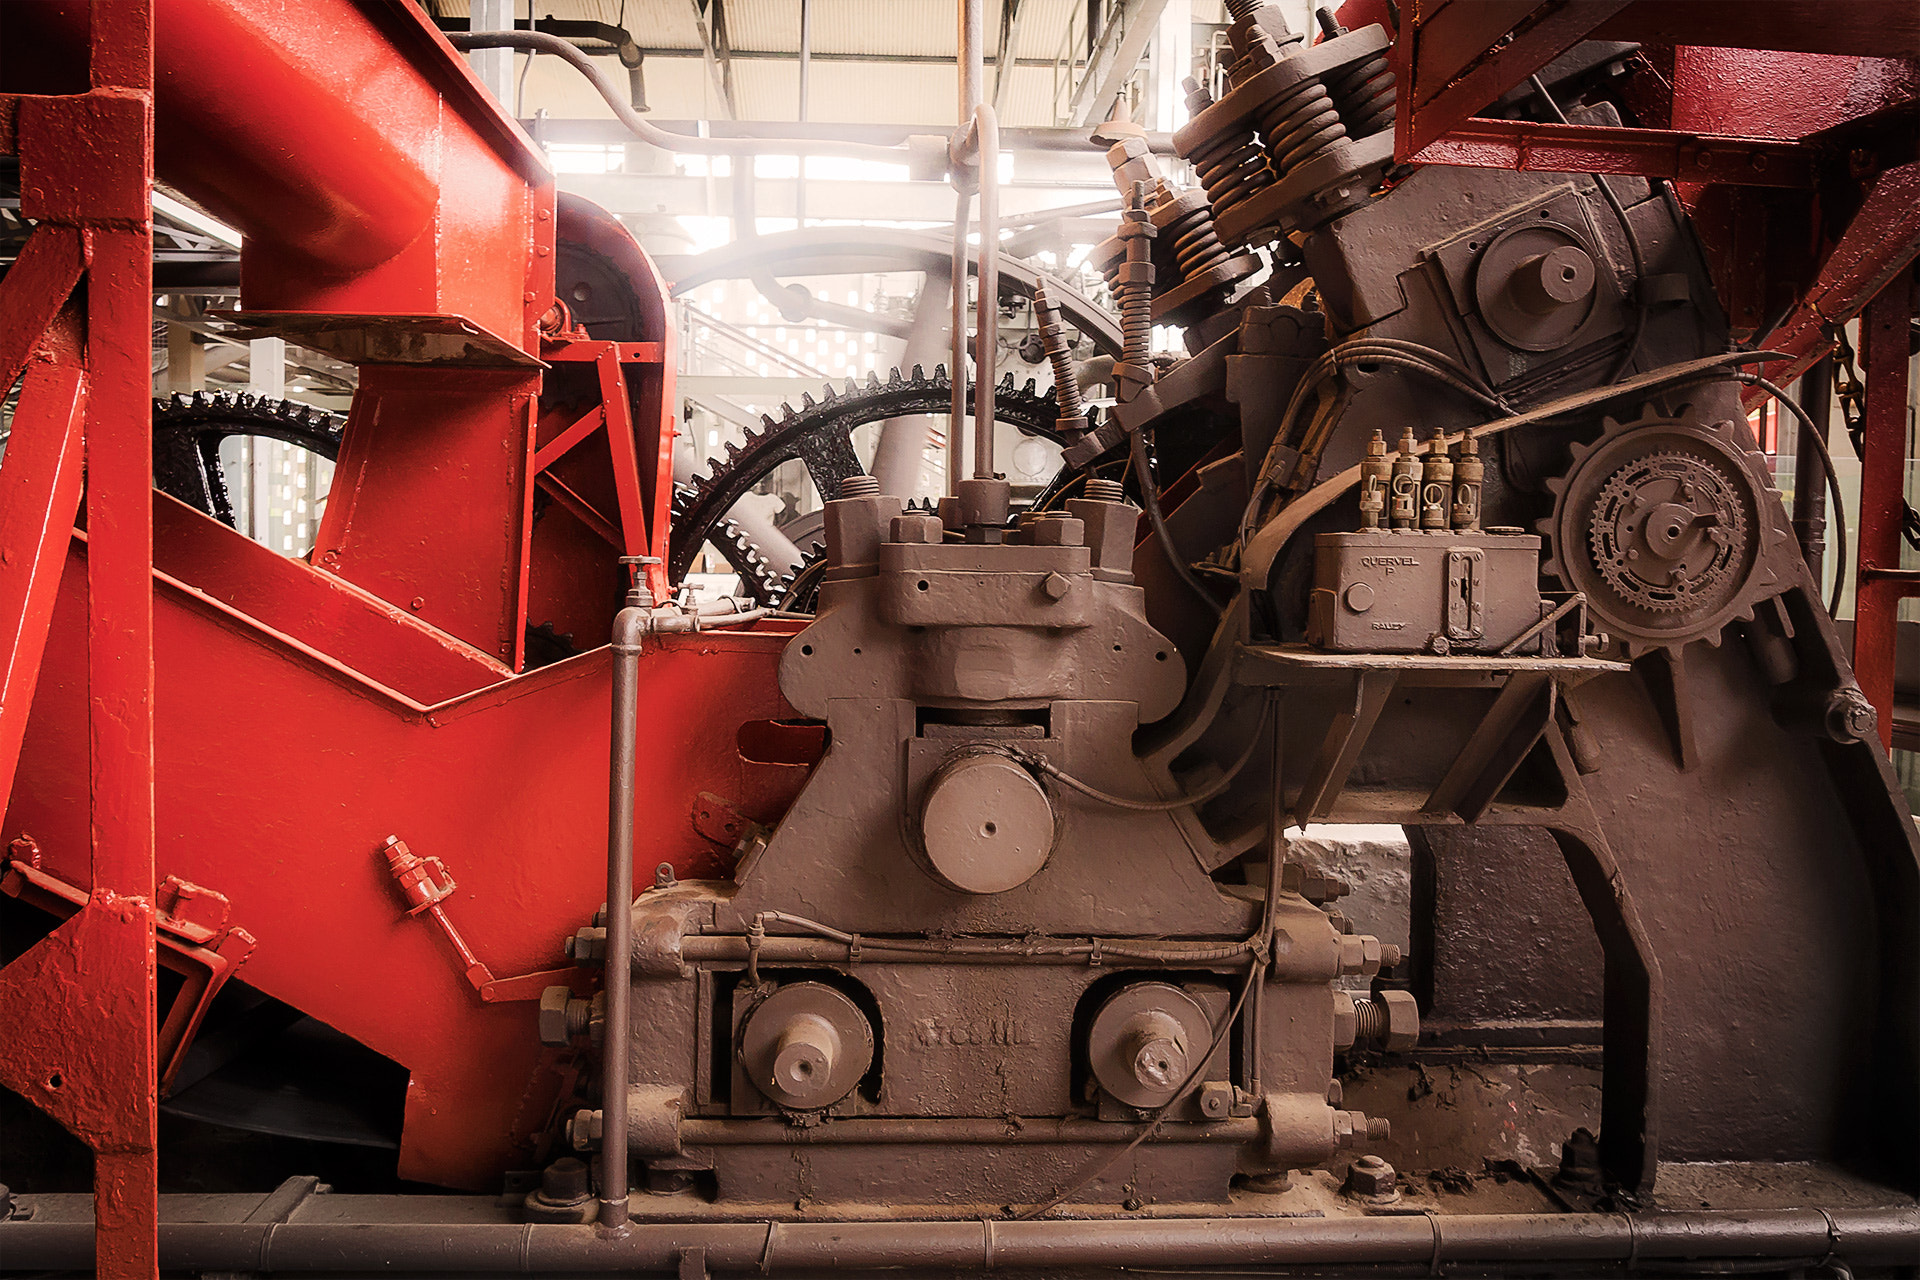 Photograph welcome to the machine by Olivier Bigot on 500px